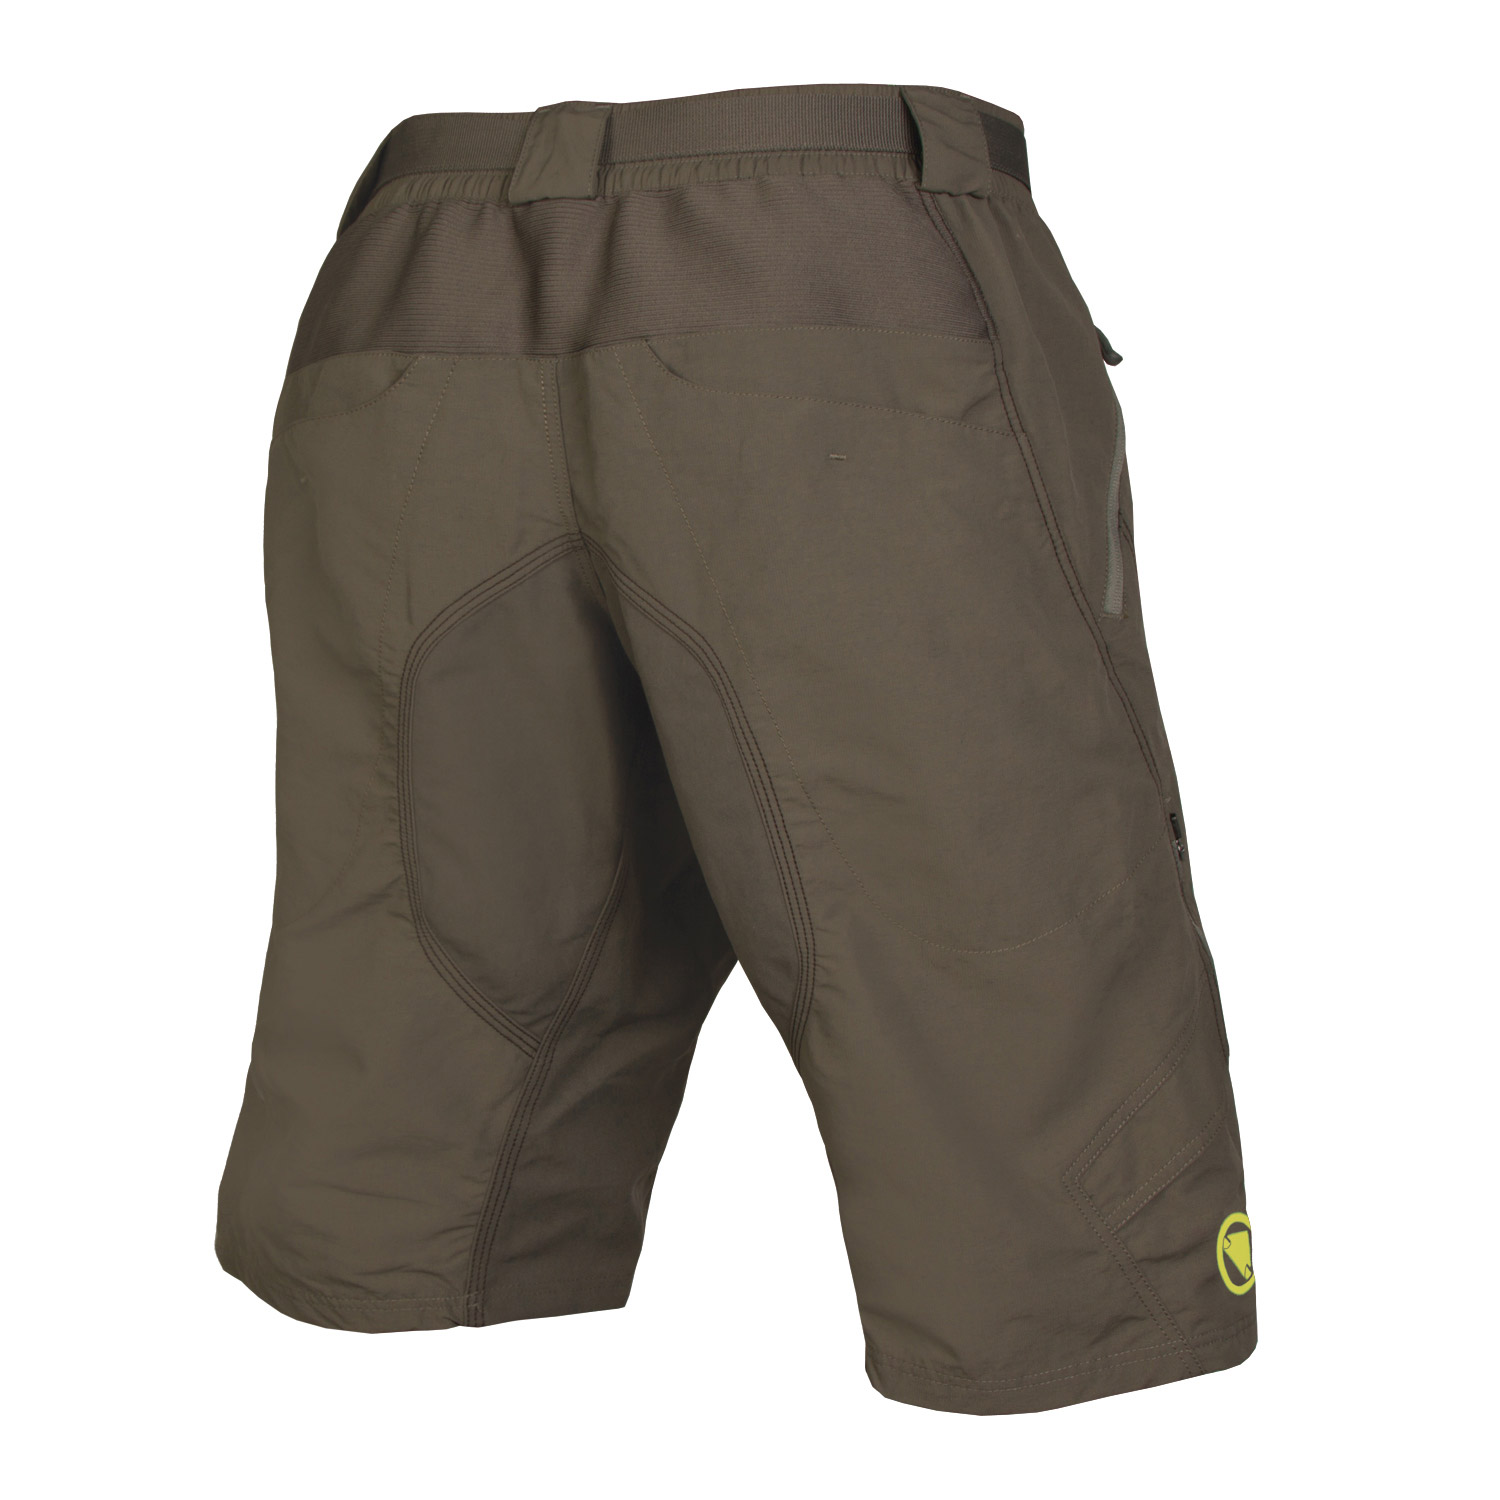 Hummvee Short II with liner back